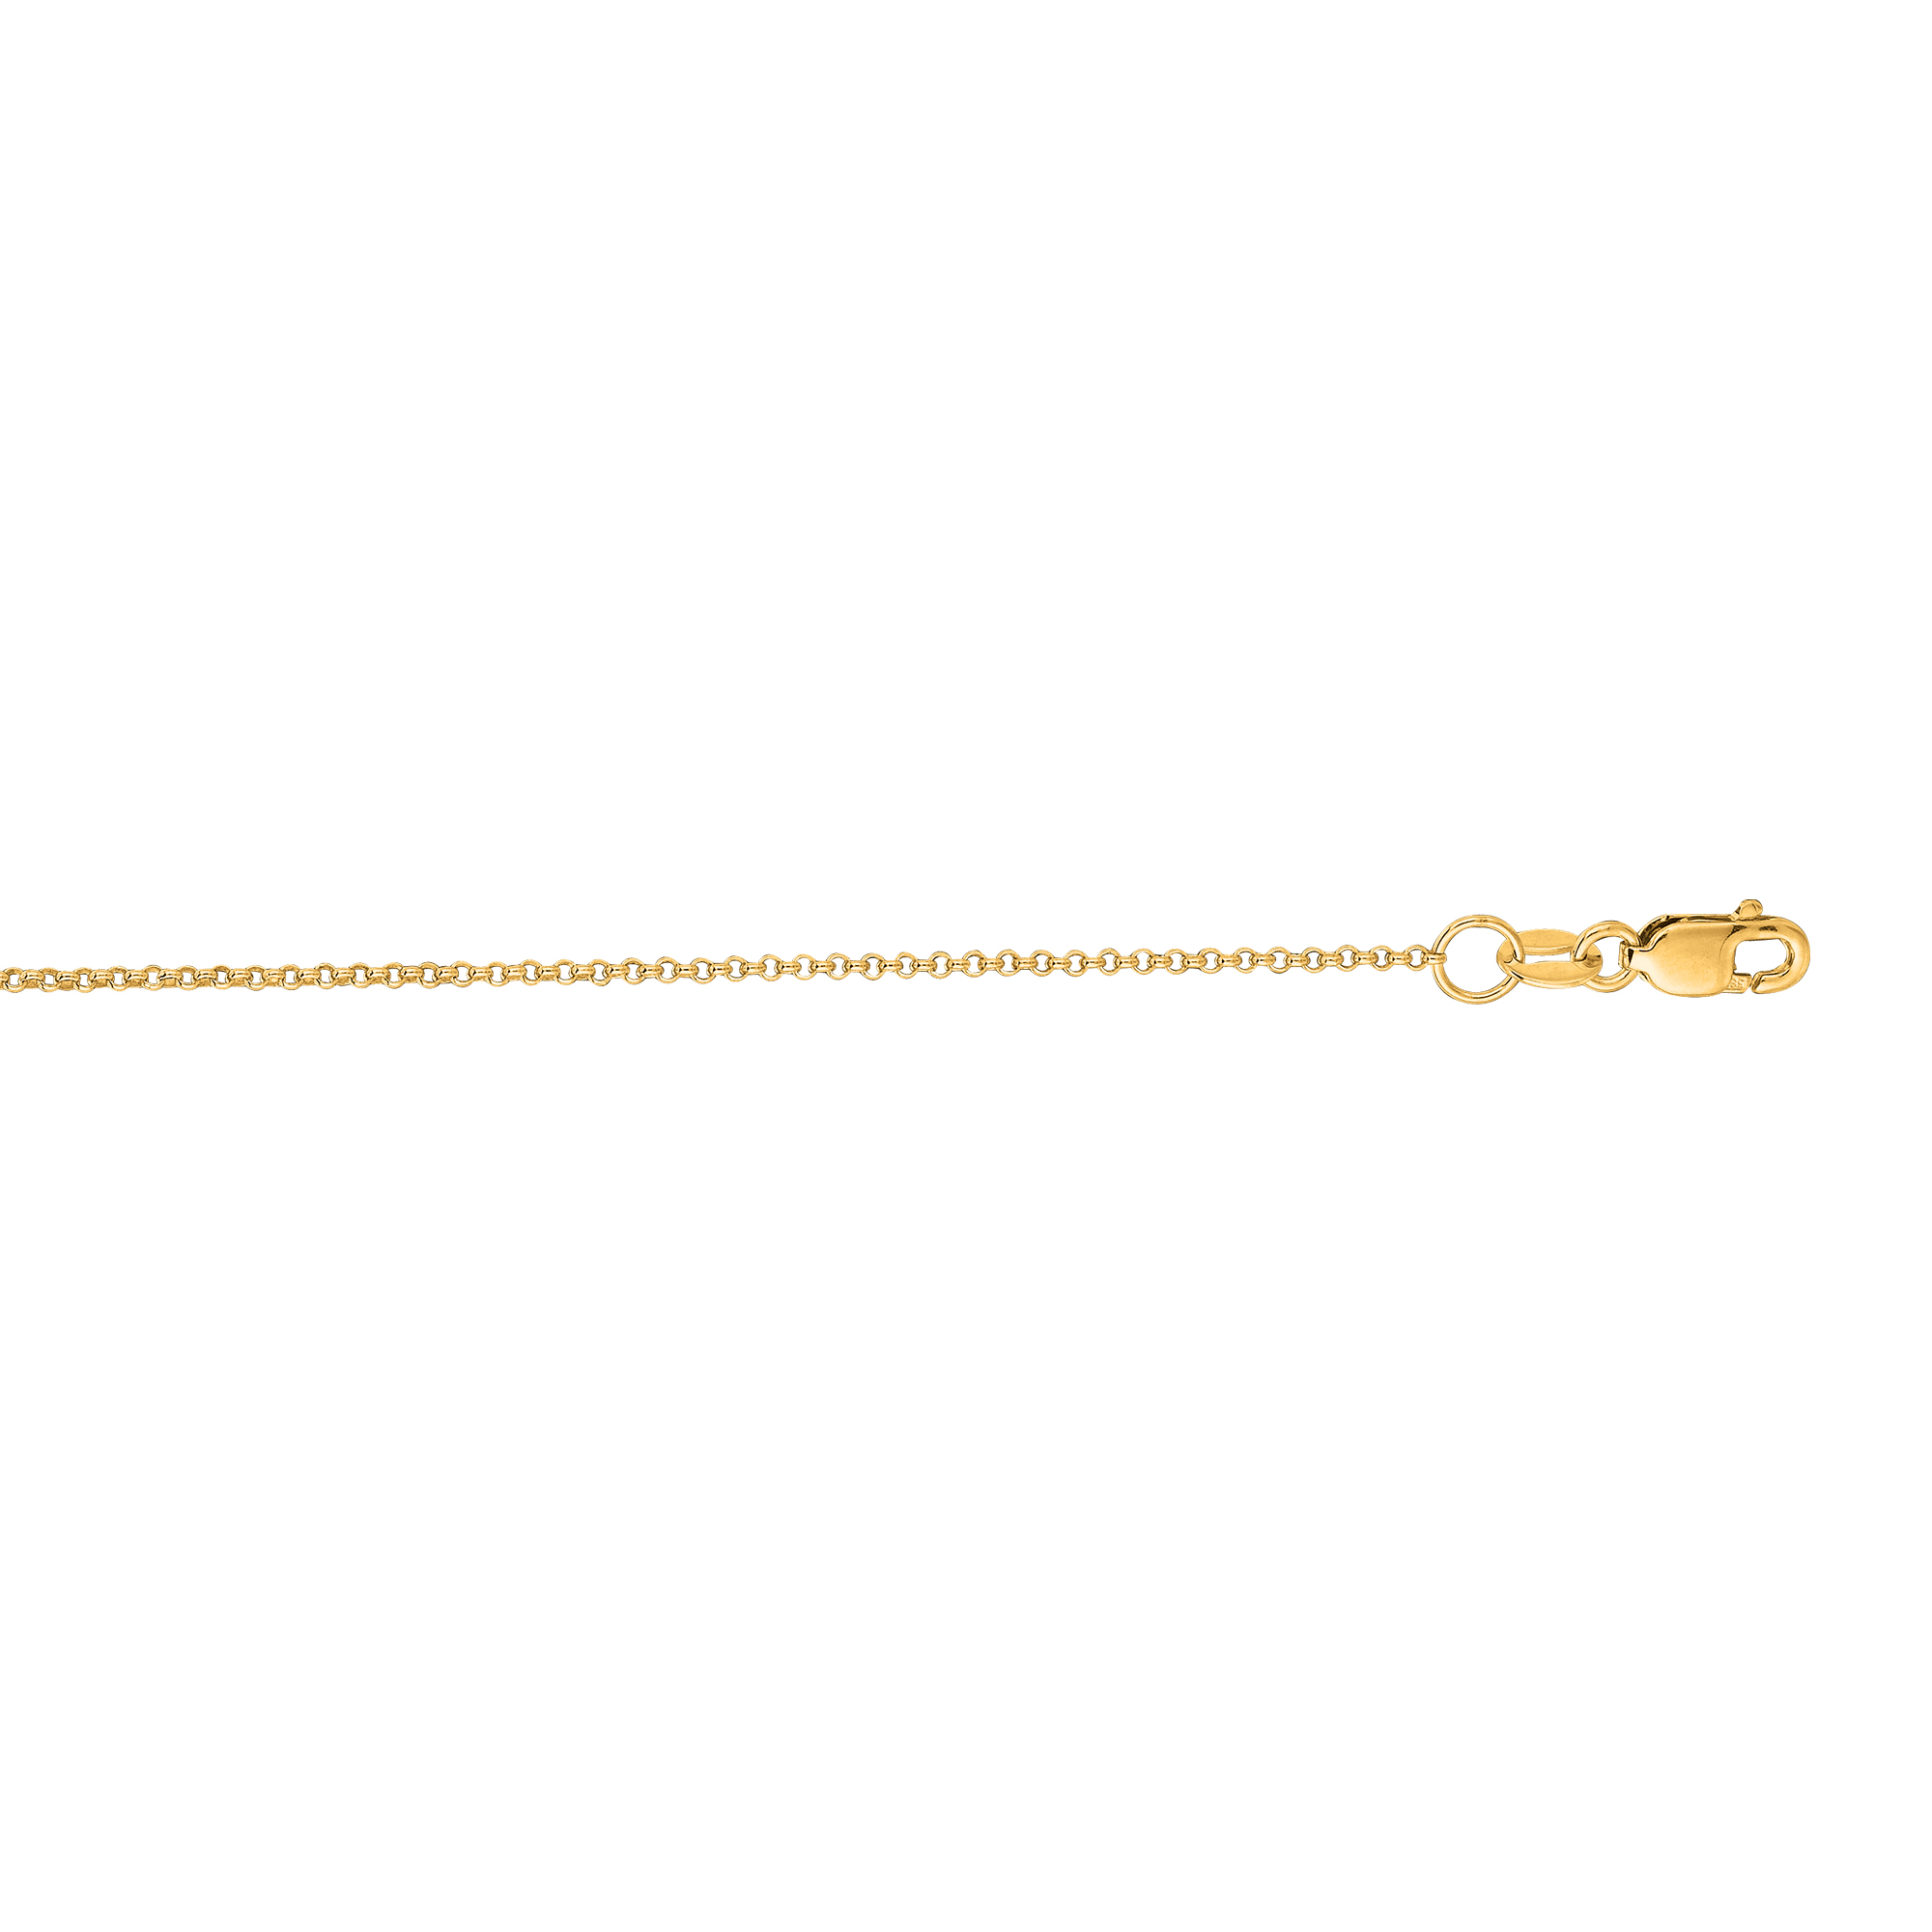 LUXURMAN Solid 14k Gold Rolo Chain For Men & Women Diamond Cut 1.1mm